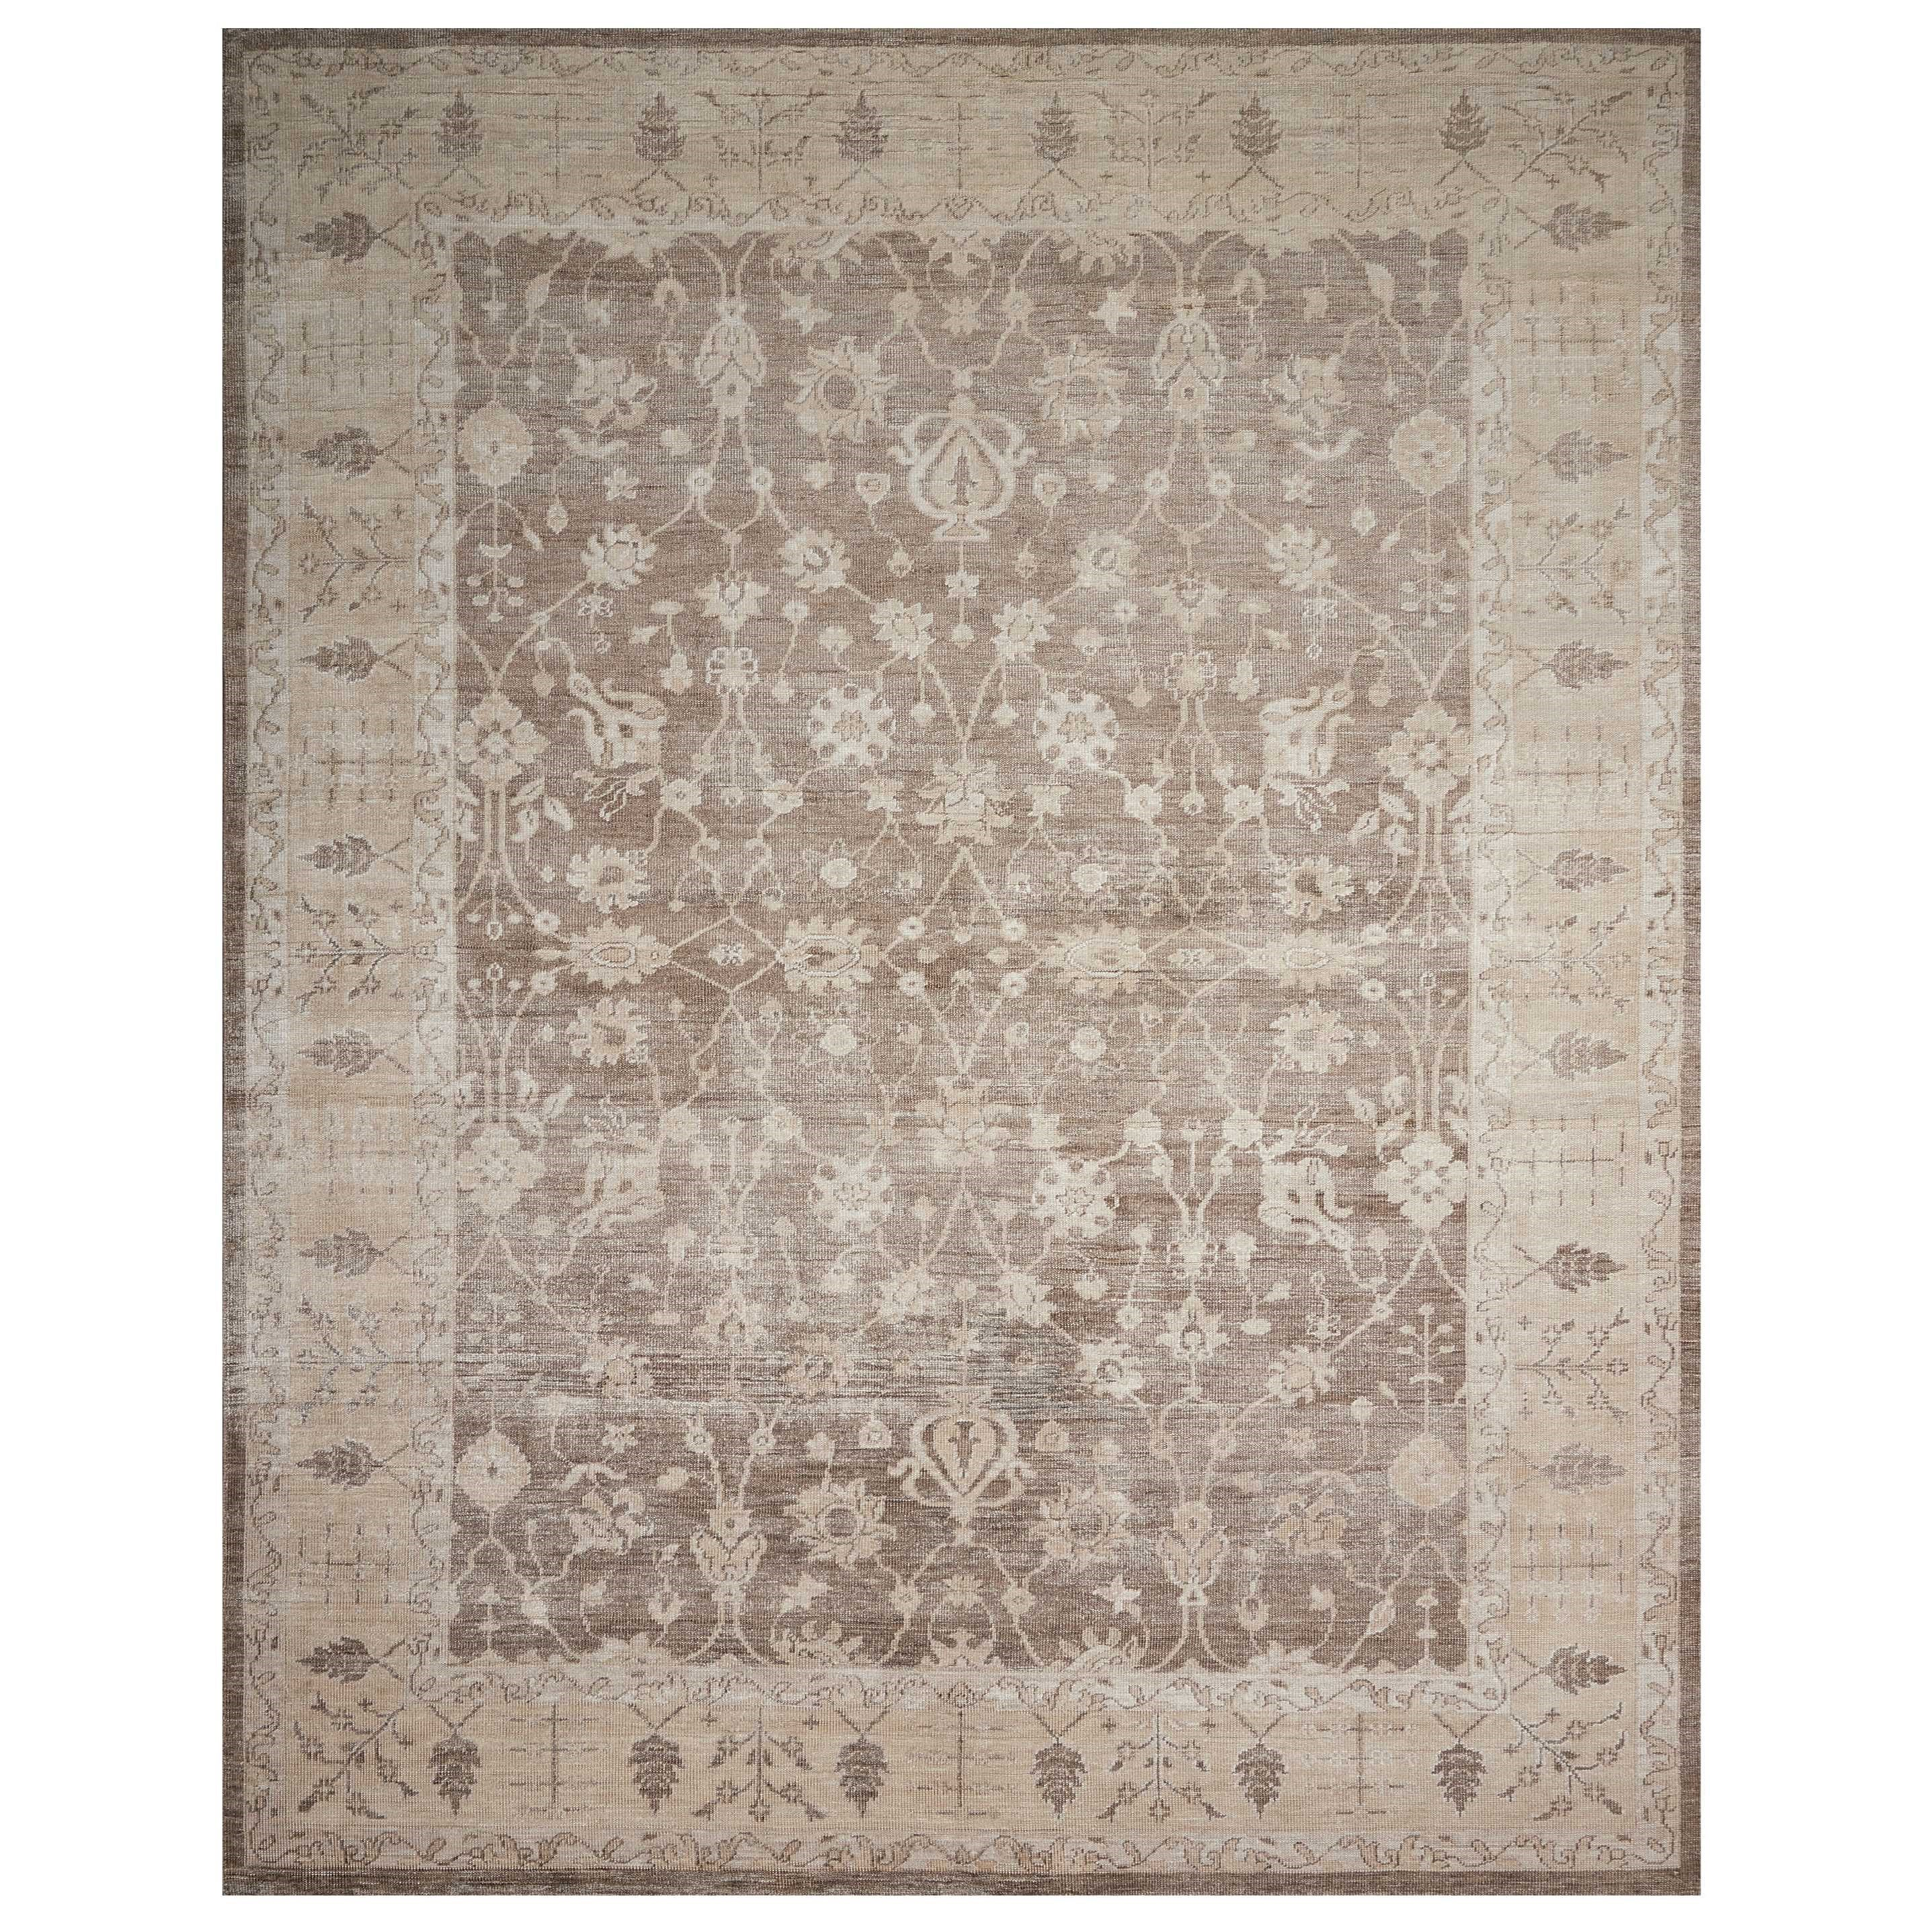 "Aldora1 7'9"" X 9'9"" Sand Rug by Nourison at Home Collections Furniture"